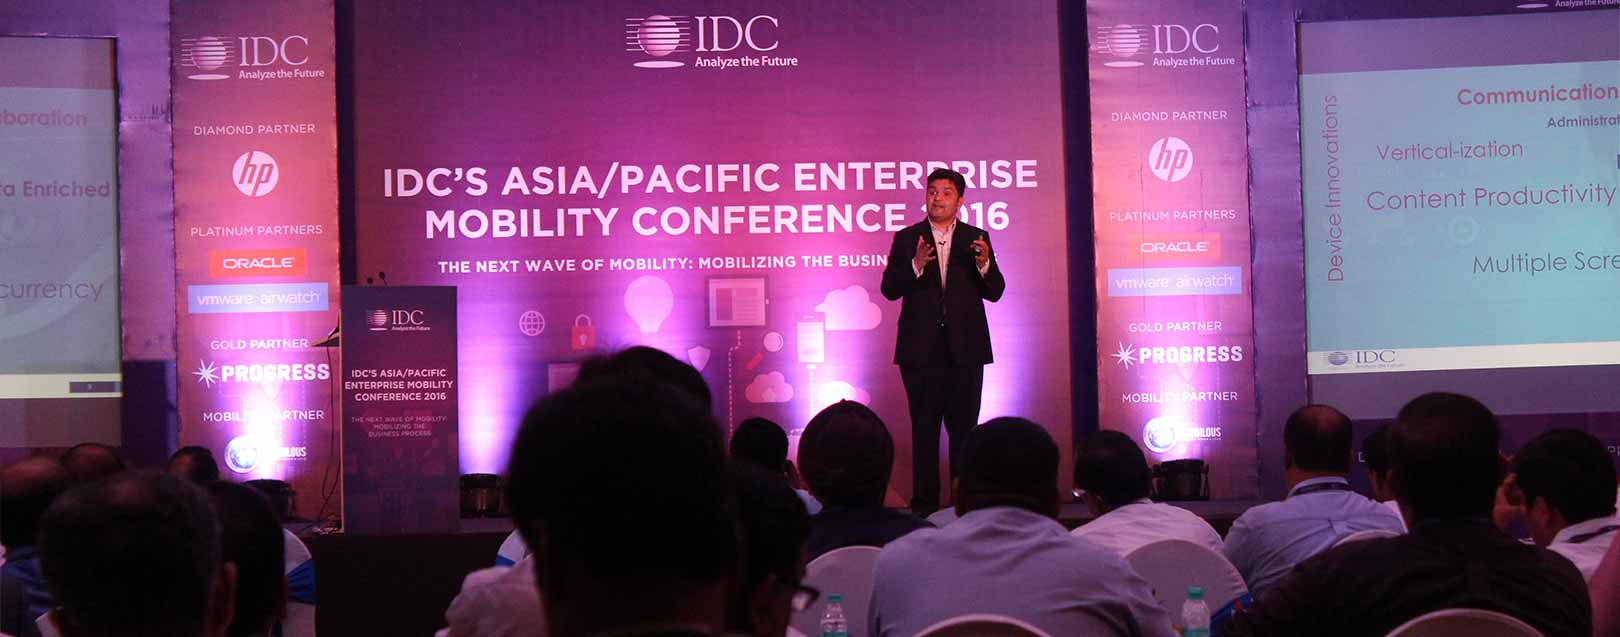 Enterprise mobility driving innovation: IDC